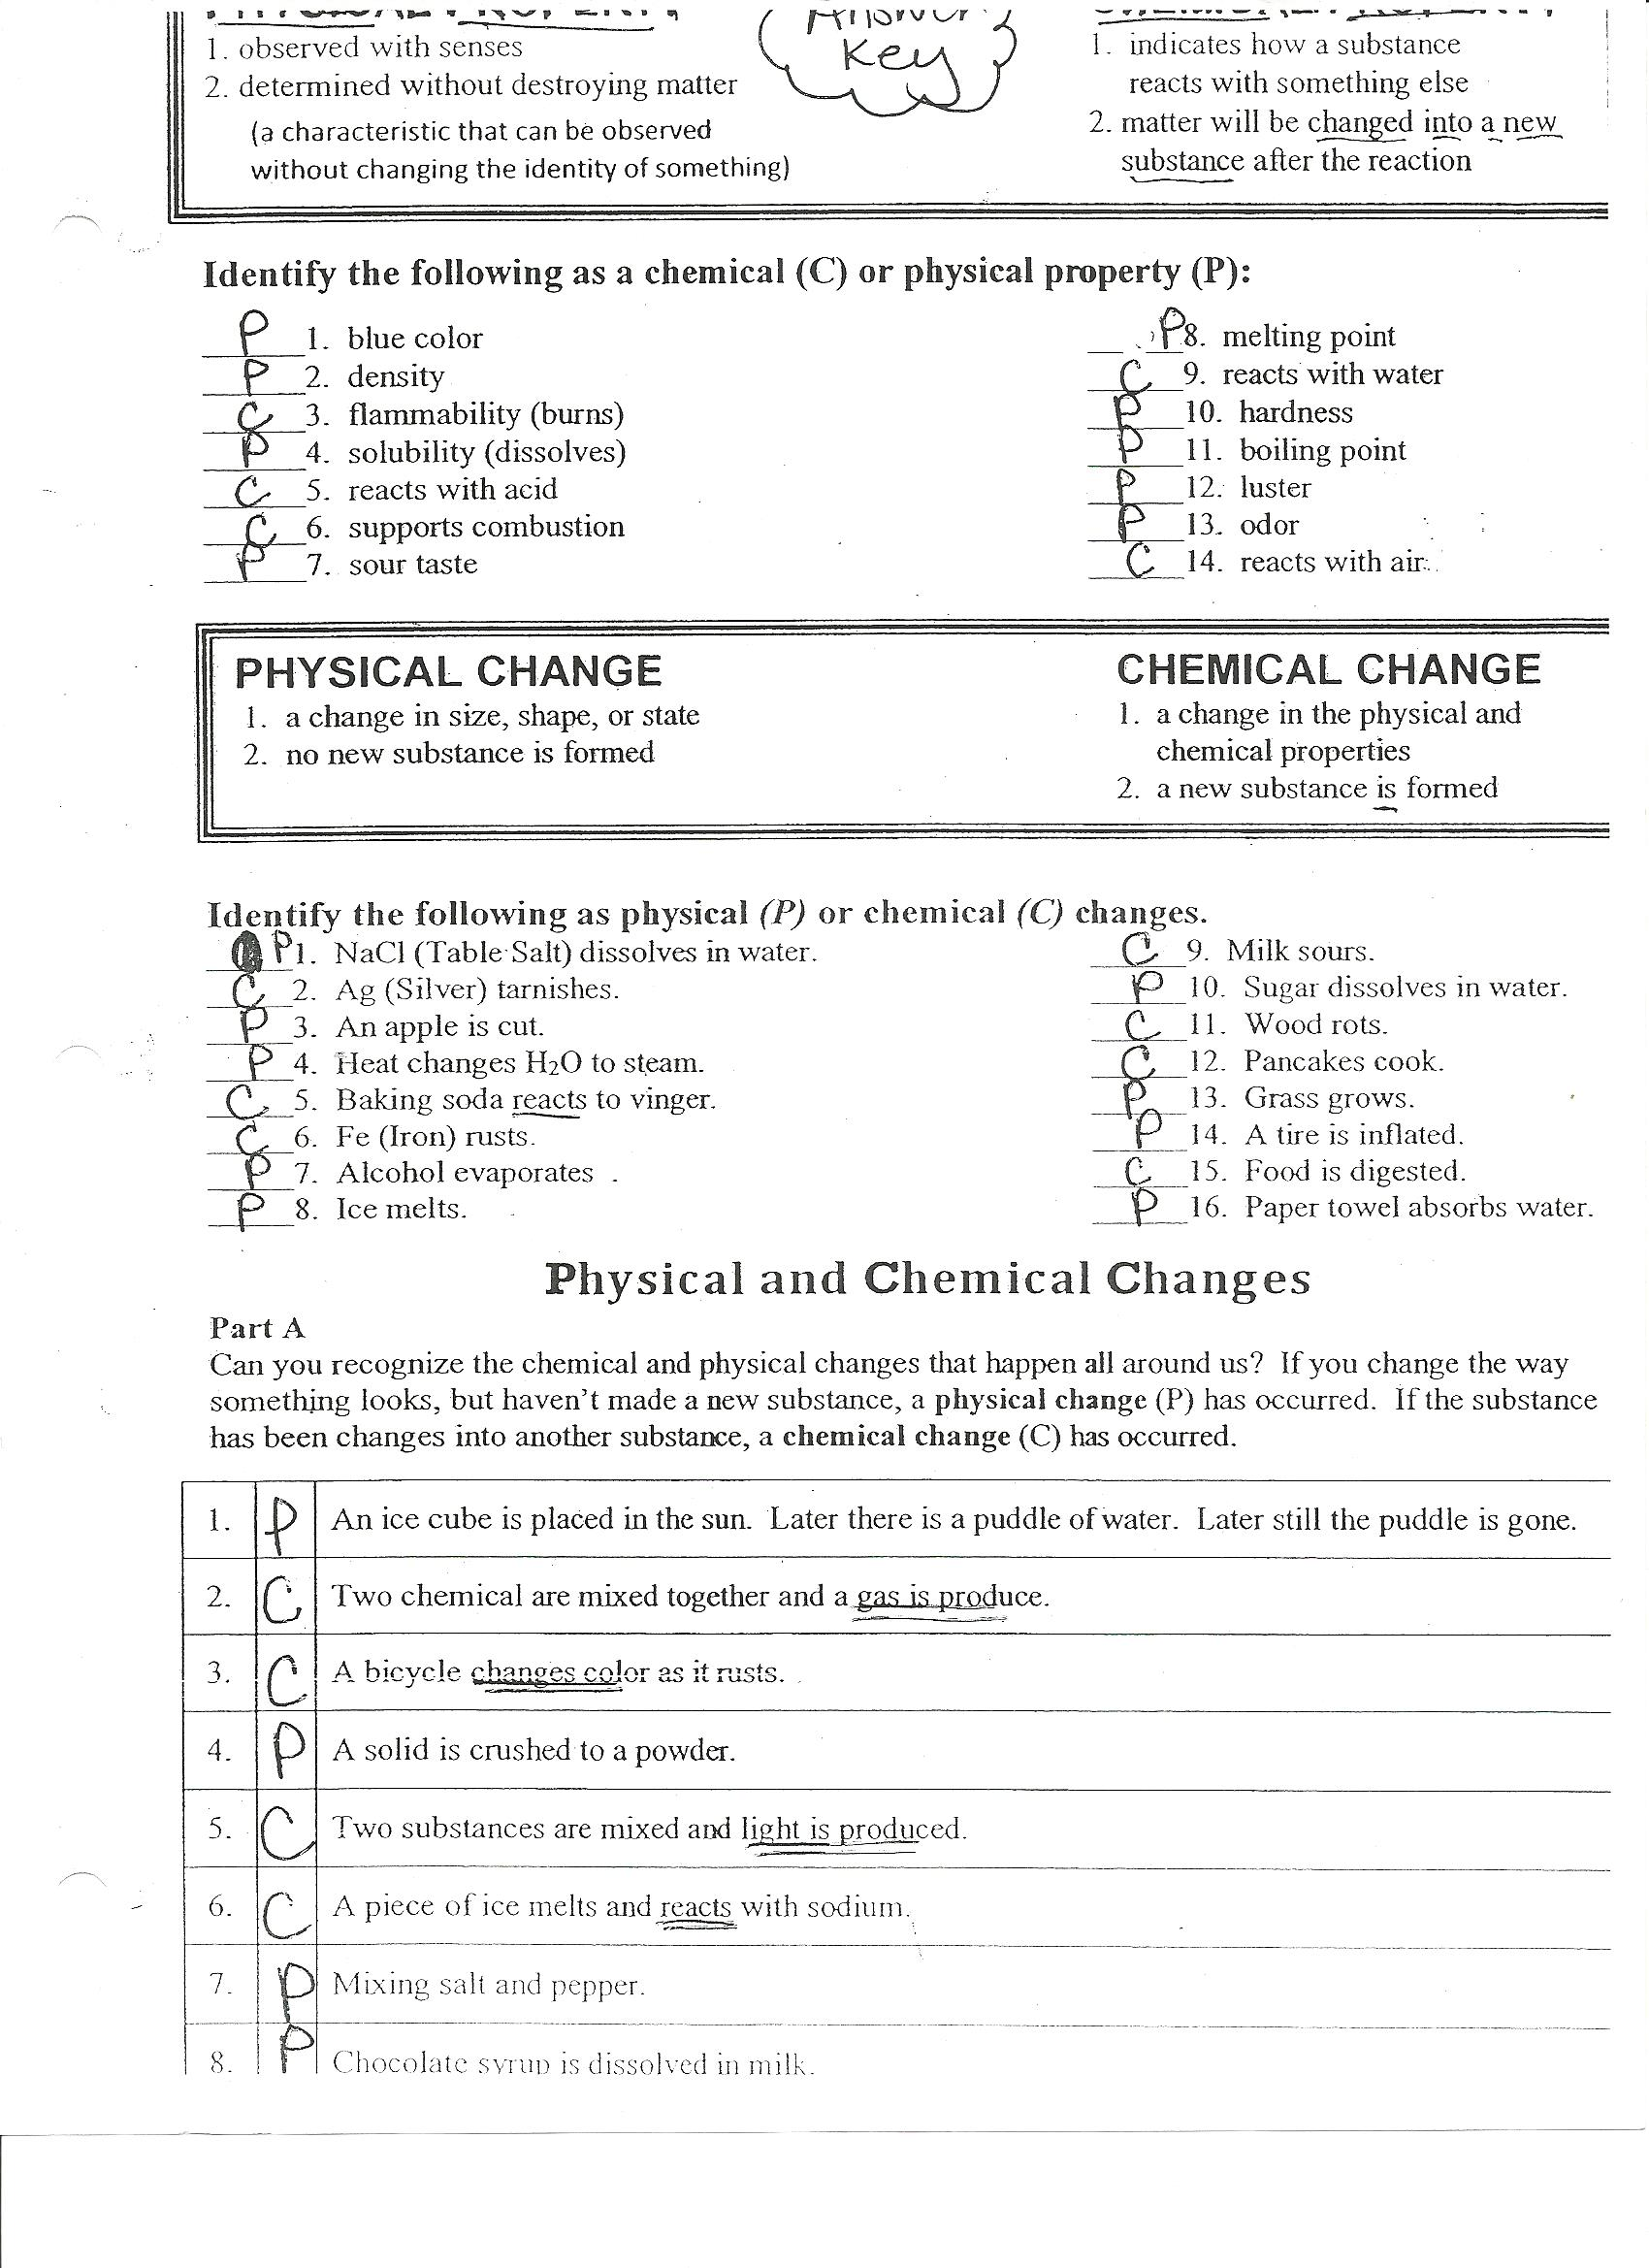 Uncategorized Properties Of Matter Worksheet cherry marcie science resources physicalchemical worksheet side 1